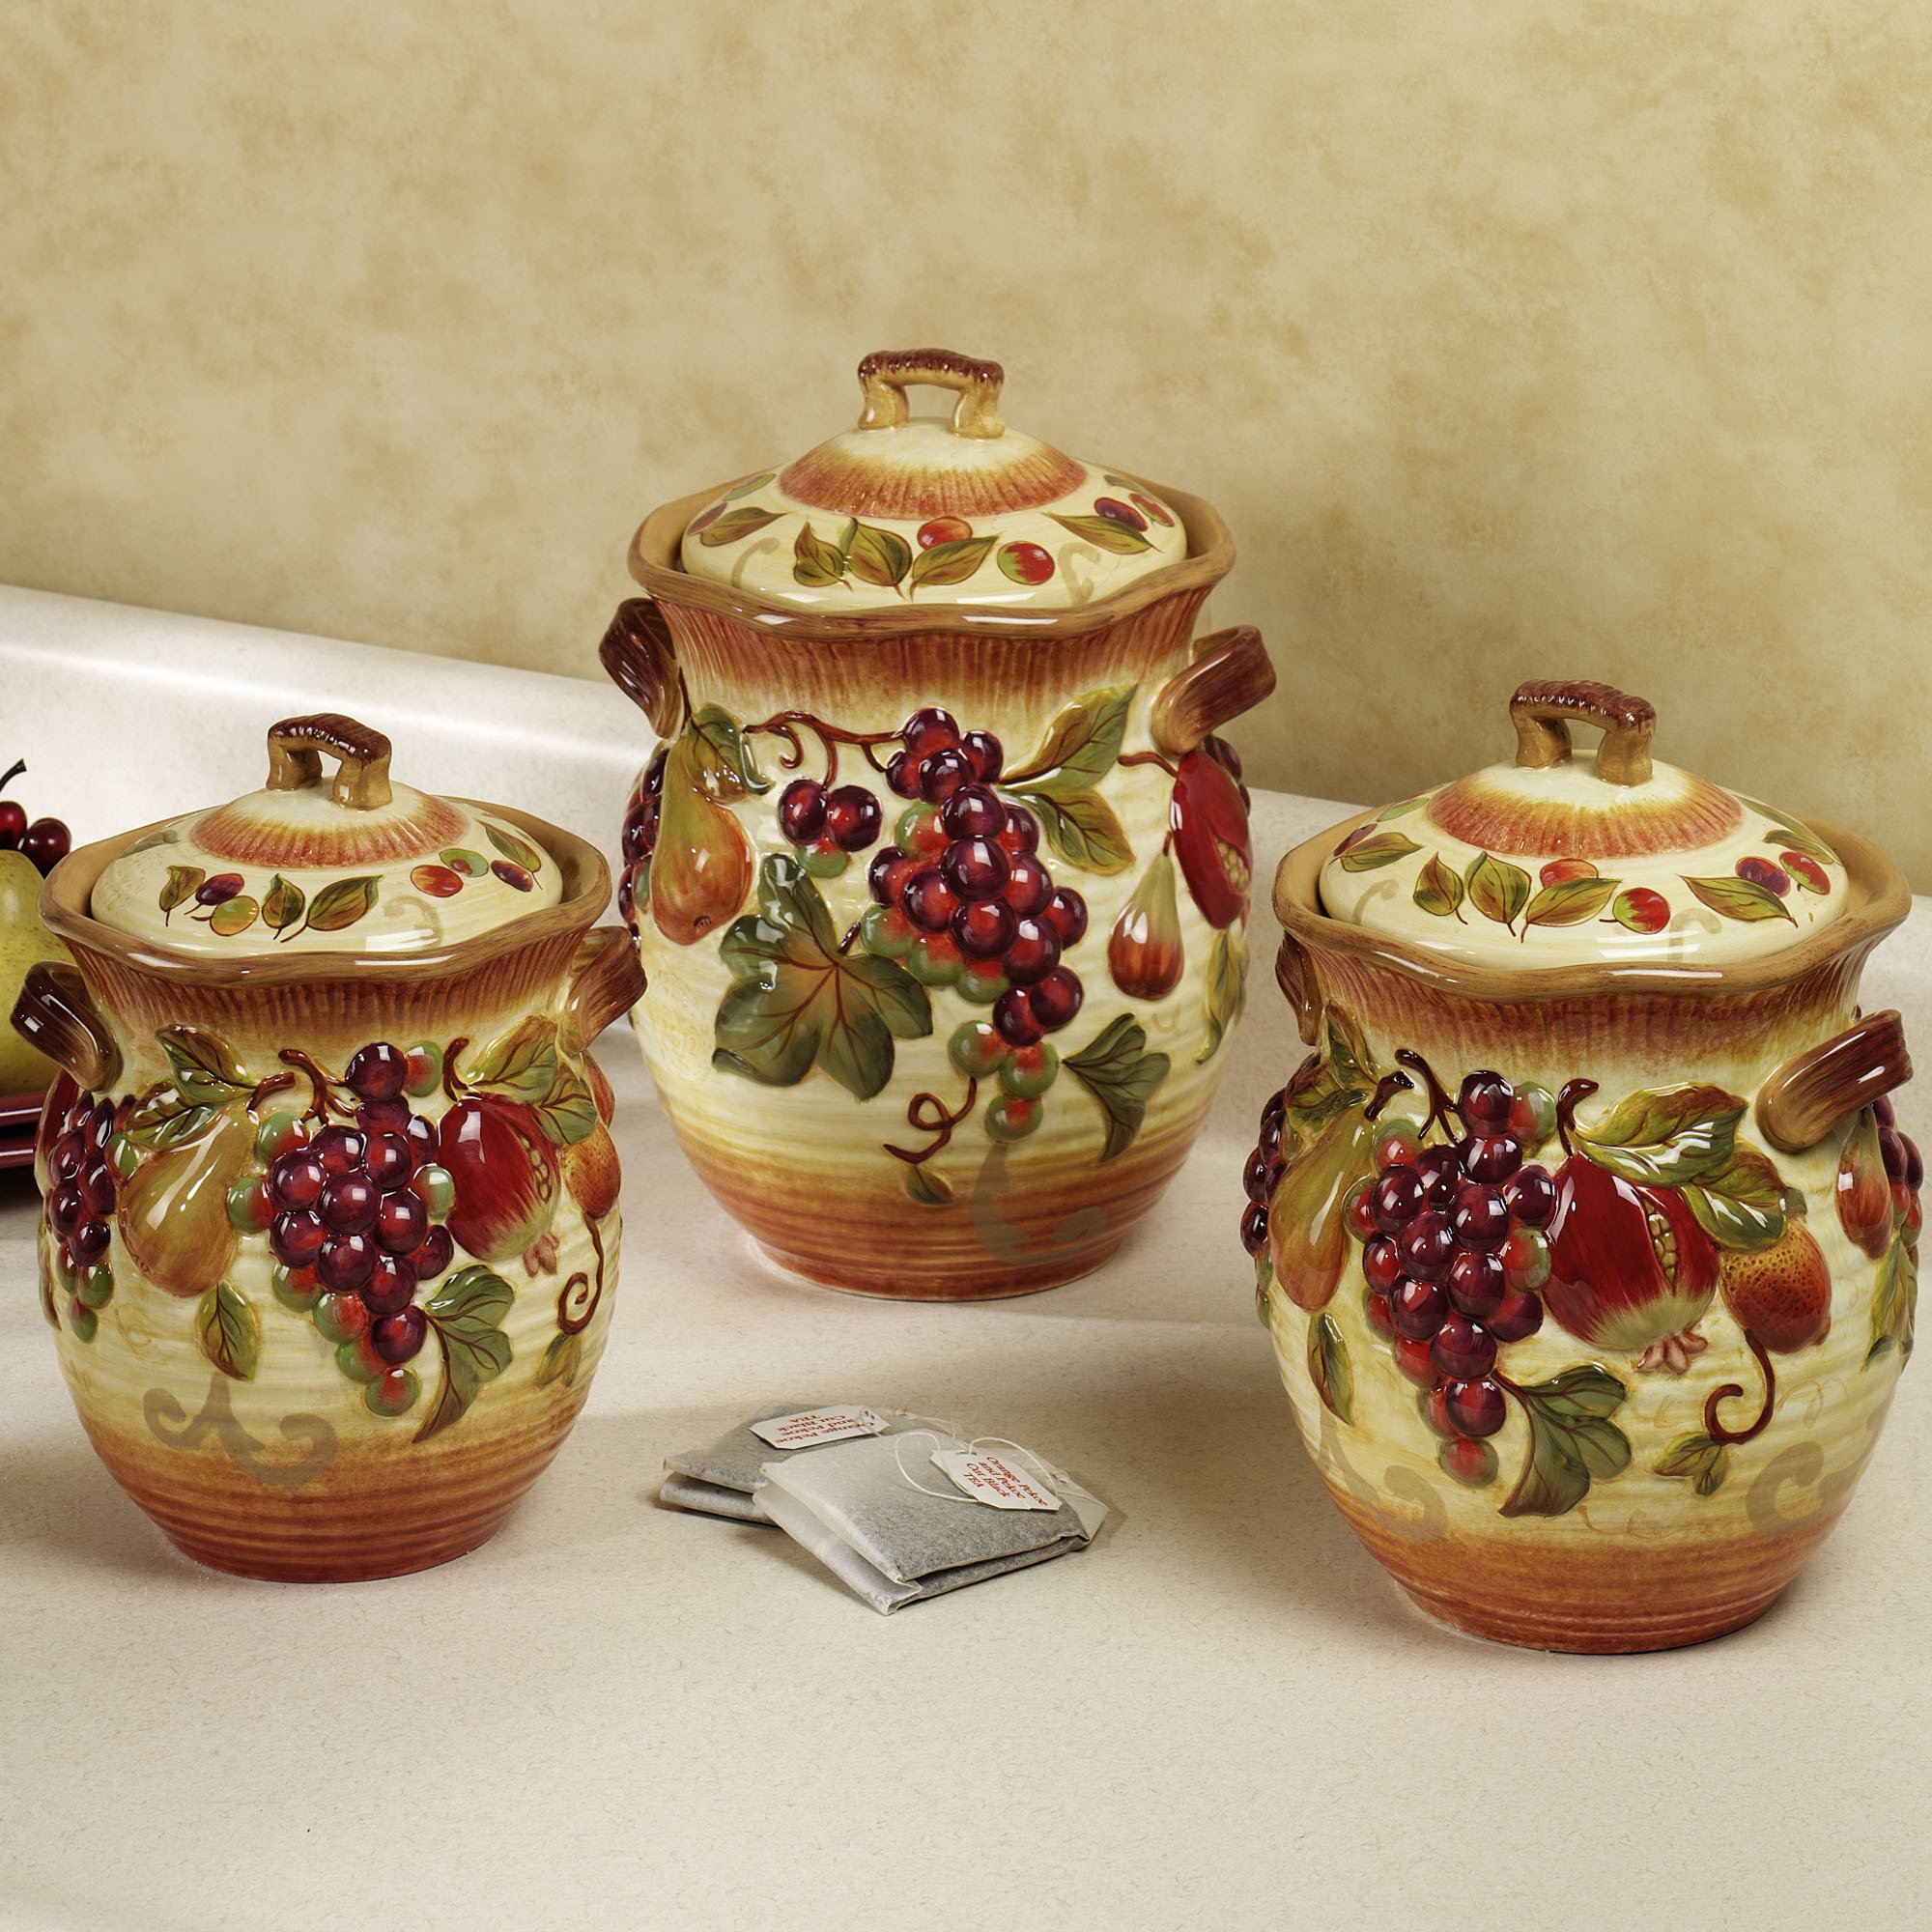 Fruit Themed Kitchen Decor Collection Apple Canisters Sets Apple Cookie Jarmy Granny Had A